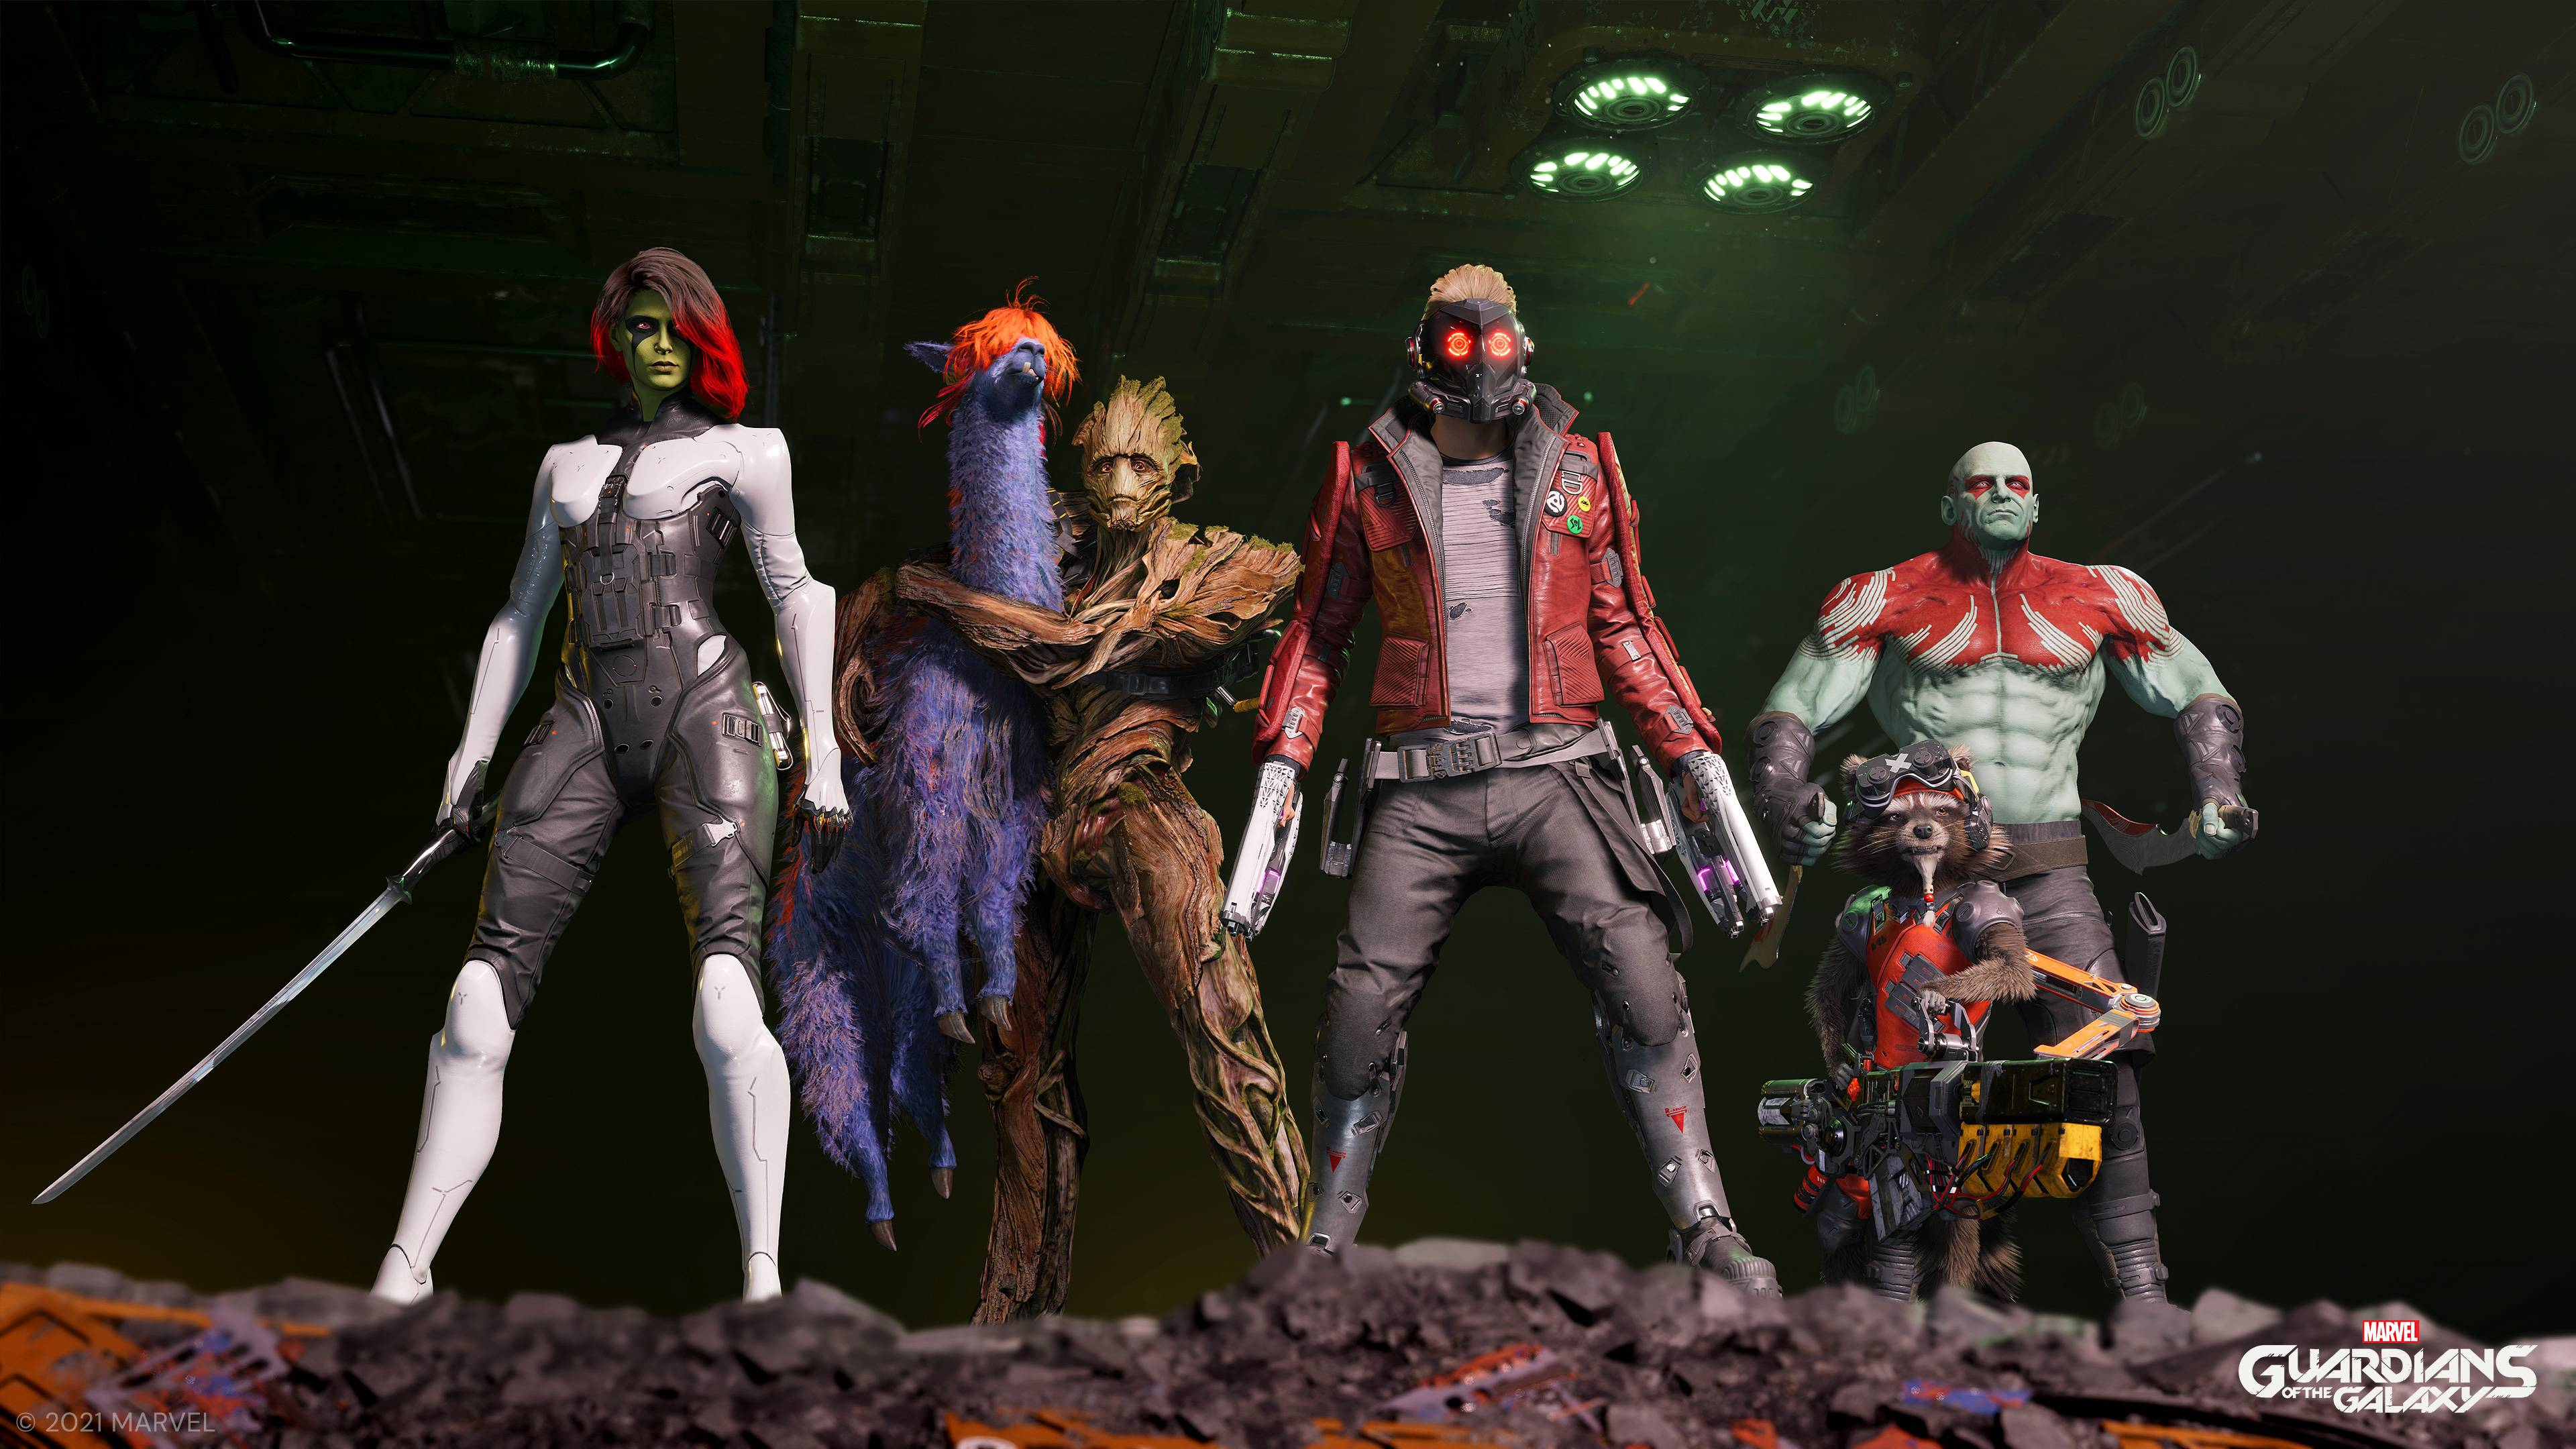 Guardians of the Galaxy members